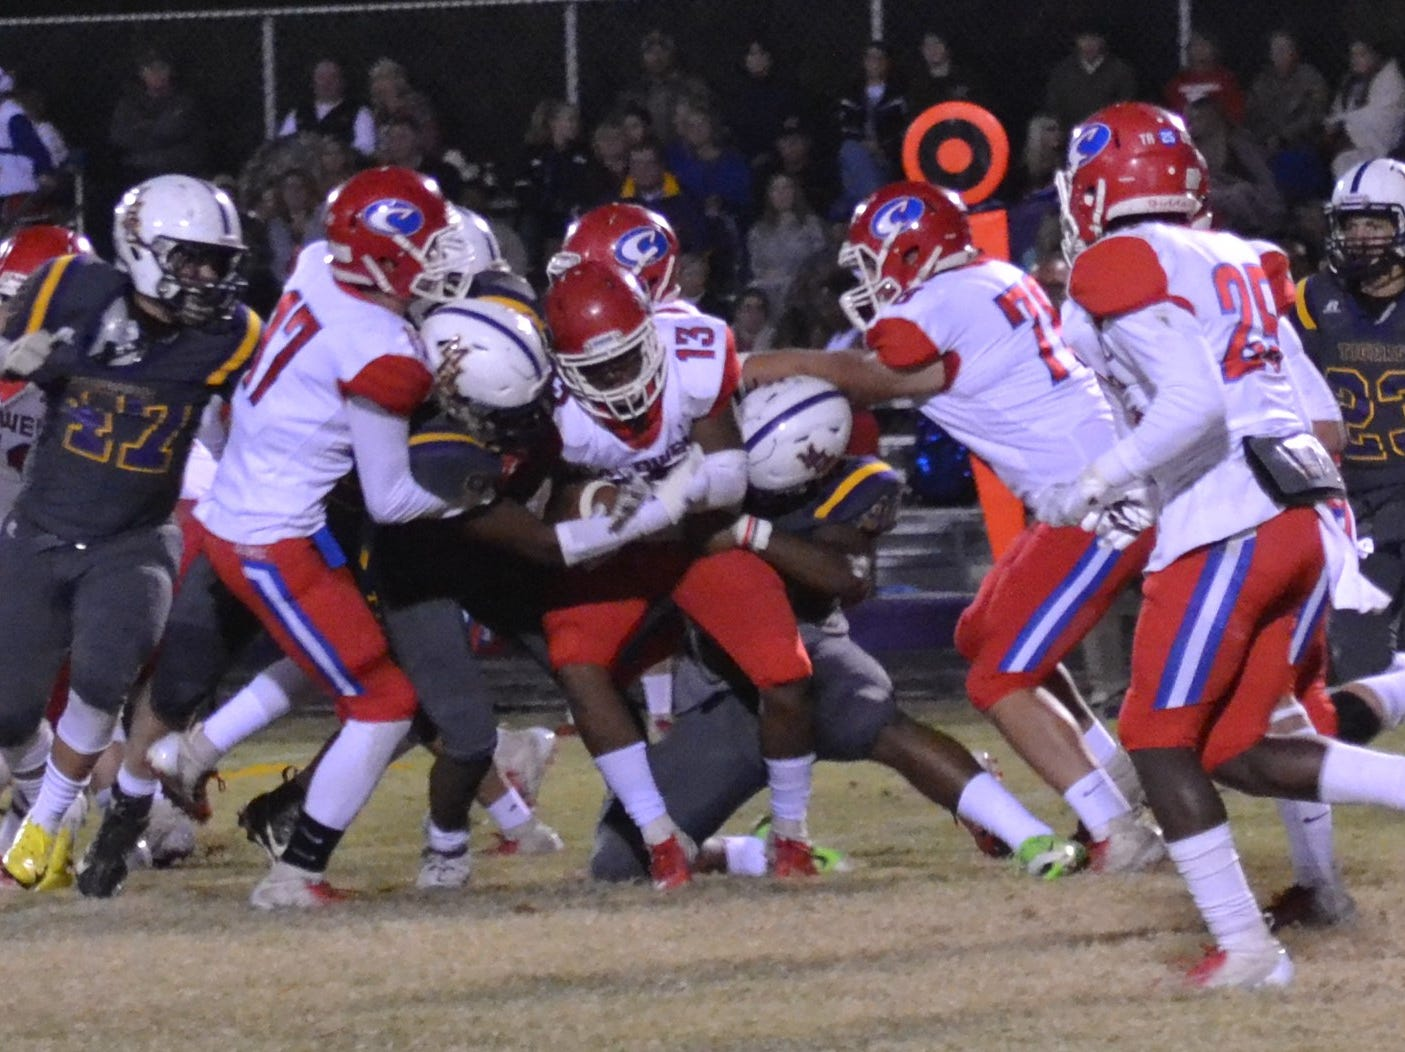 Marksville defenders converge on Caldwell's B.J. Cheffin (13). Marksville and Caldwell met in the regular season finale Friday night with Caldwell edging Marksville 13-8.